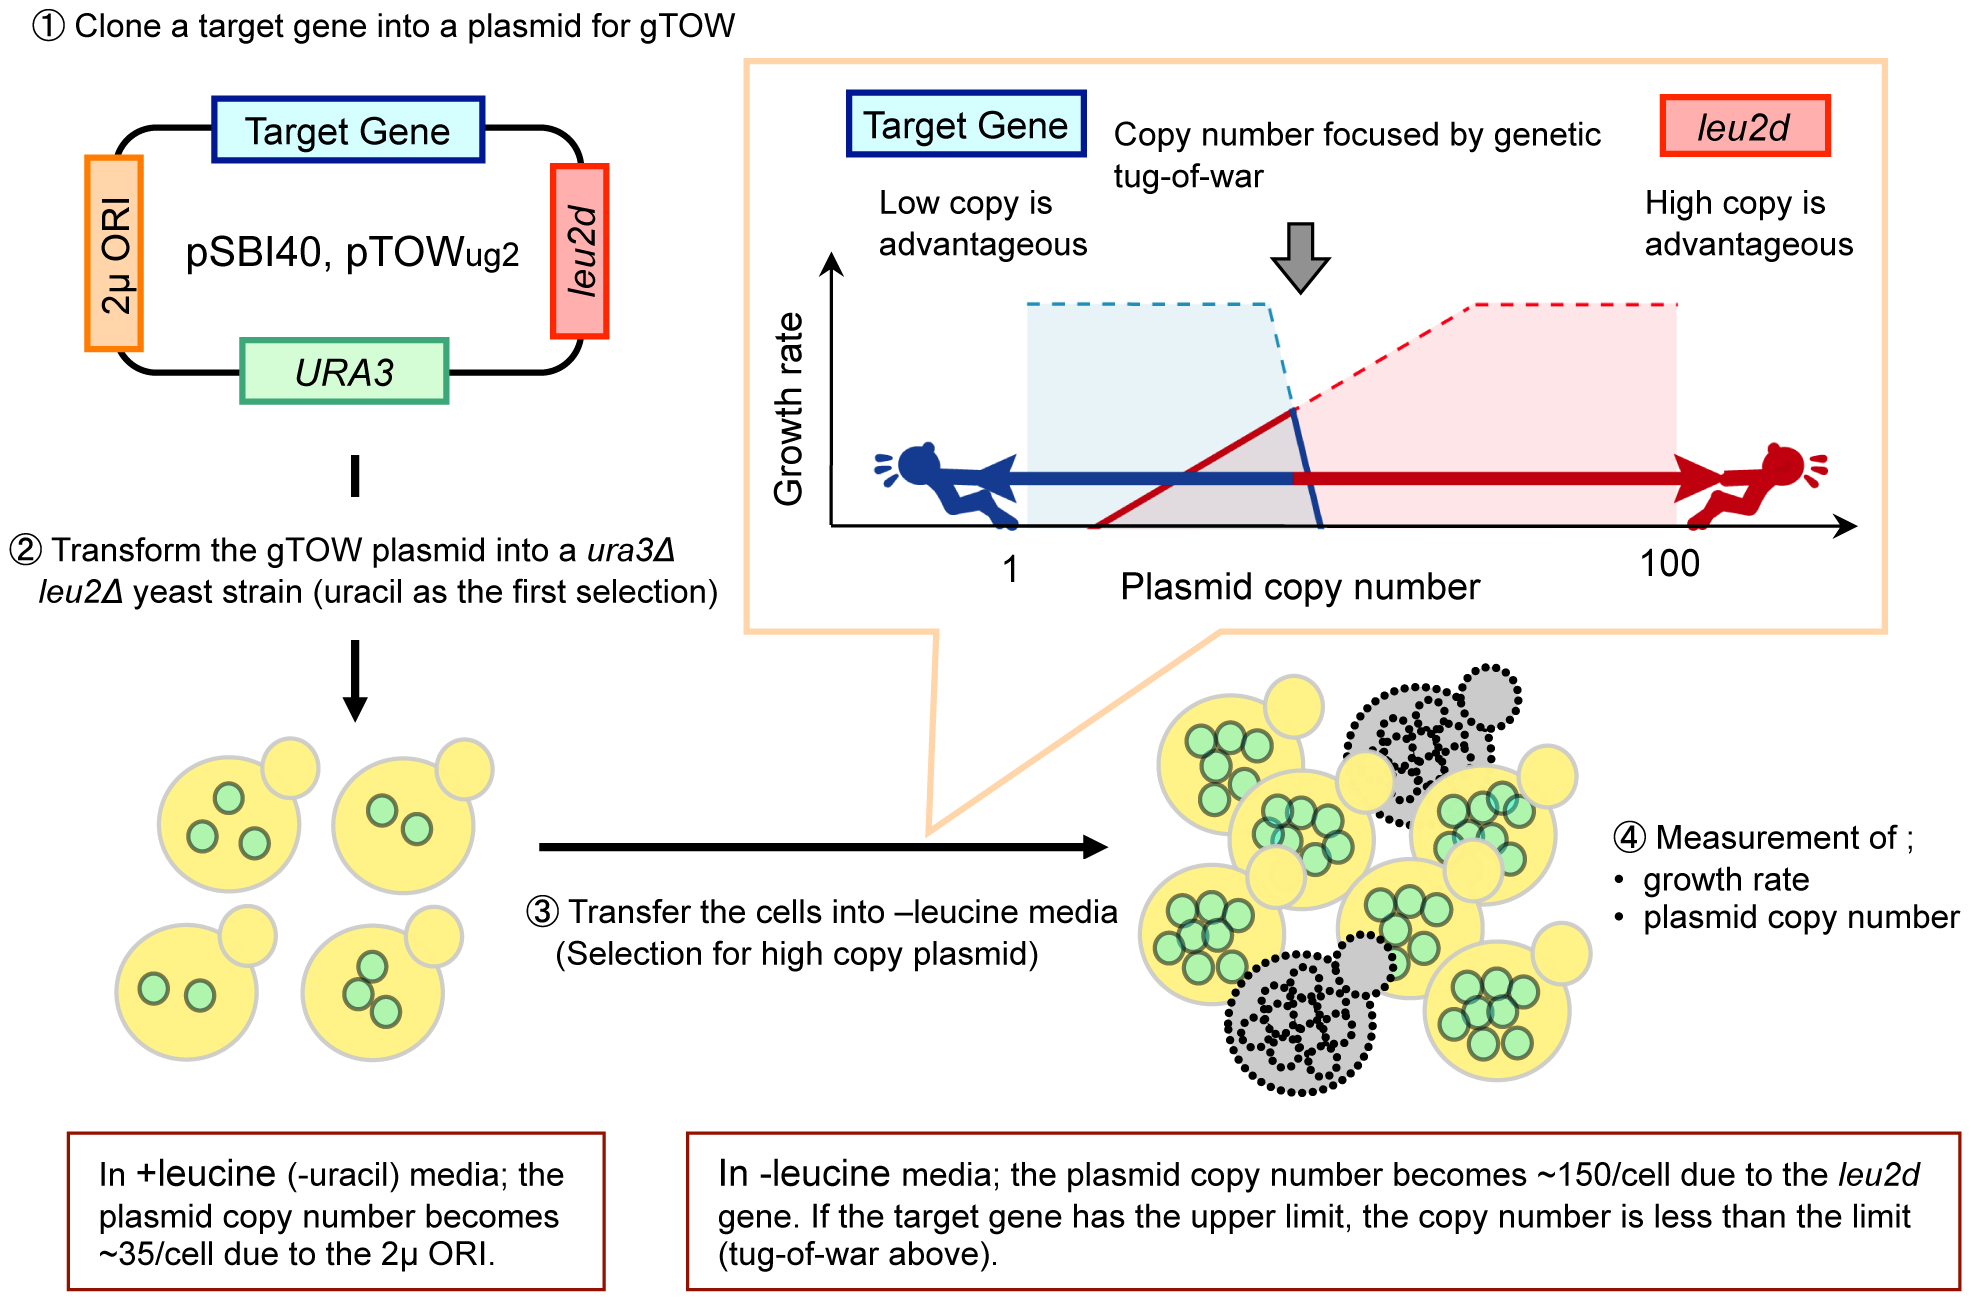 Schematic representation of the genetic tug-of-war (gTOW) experiment.